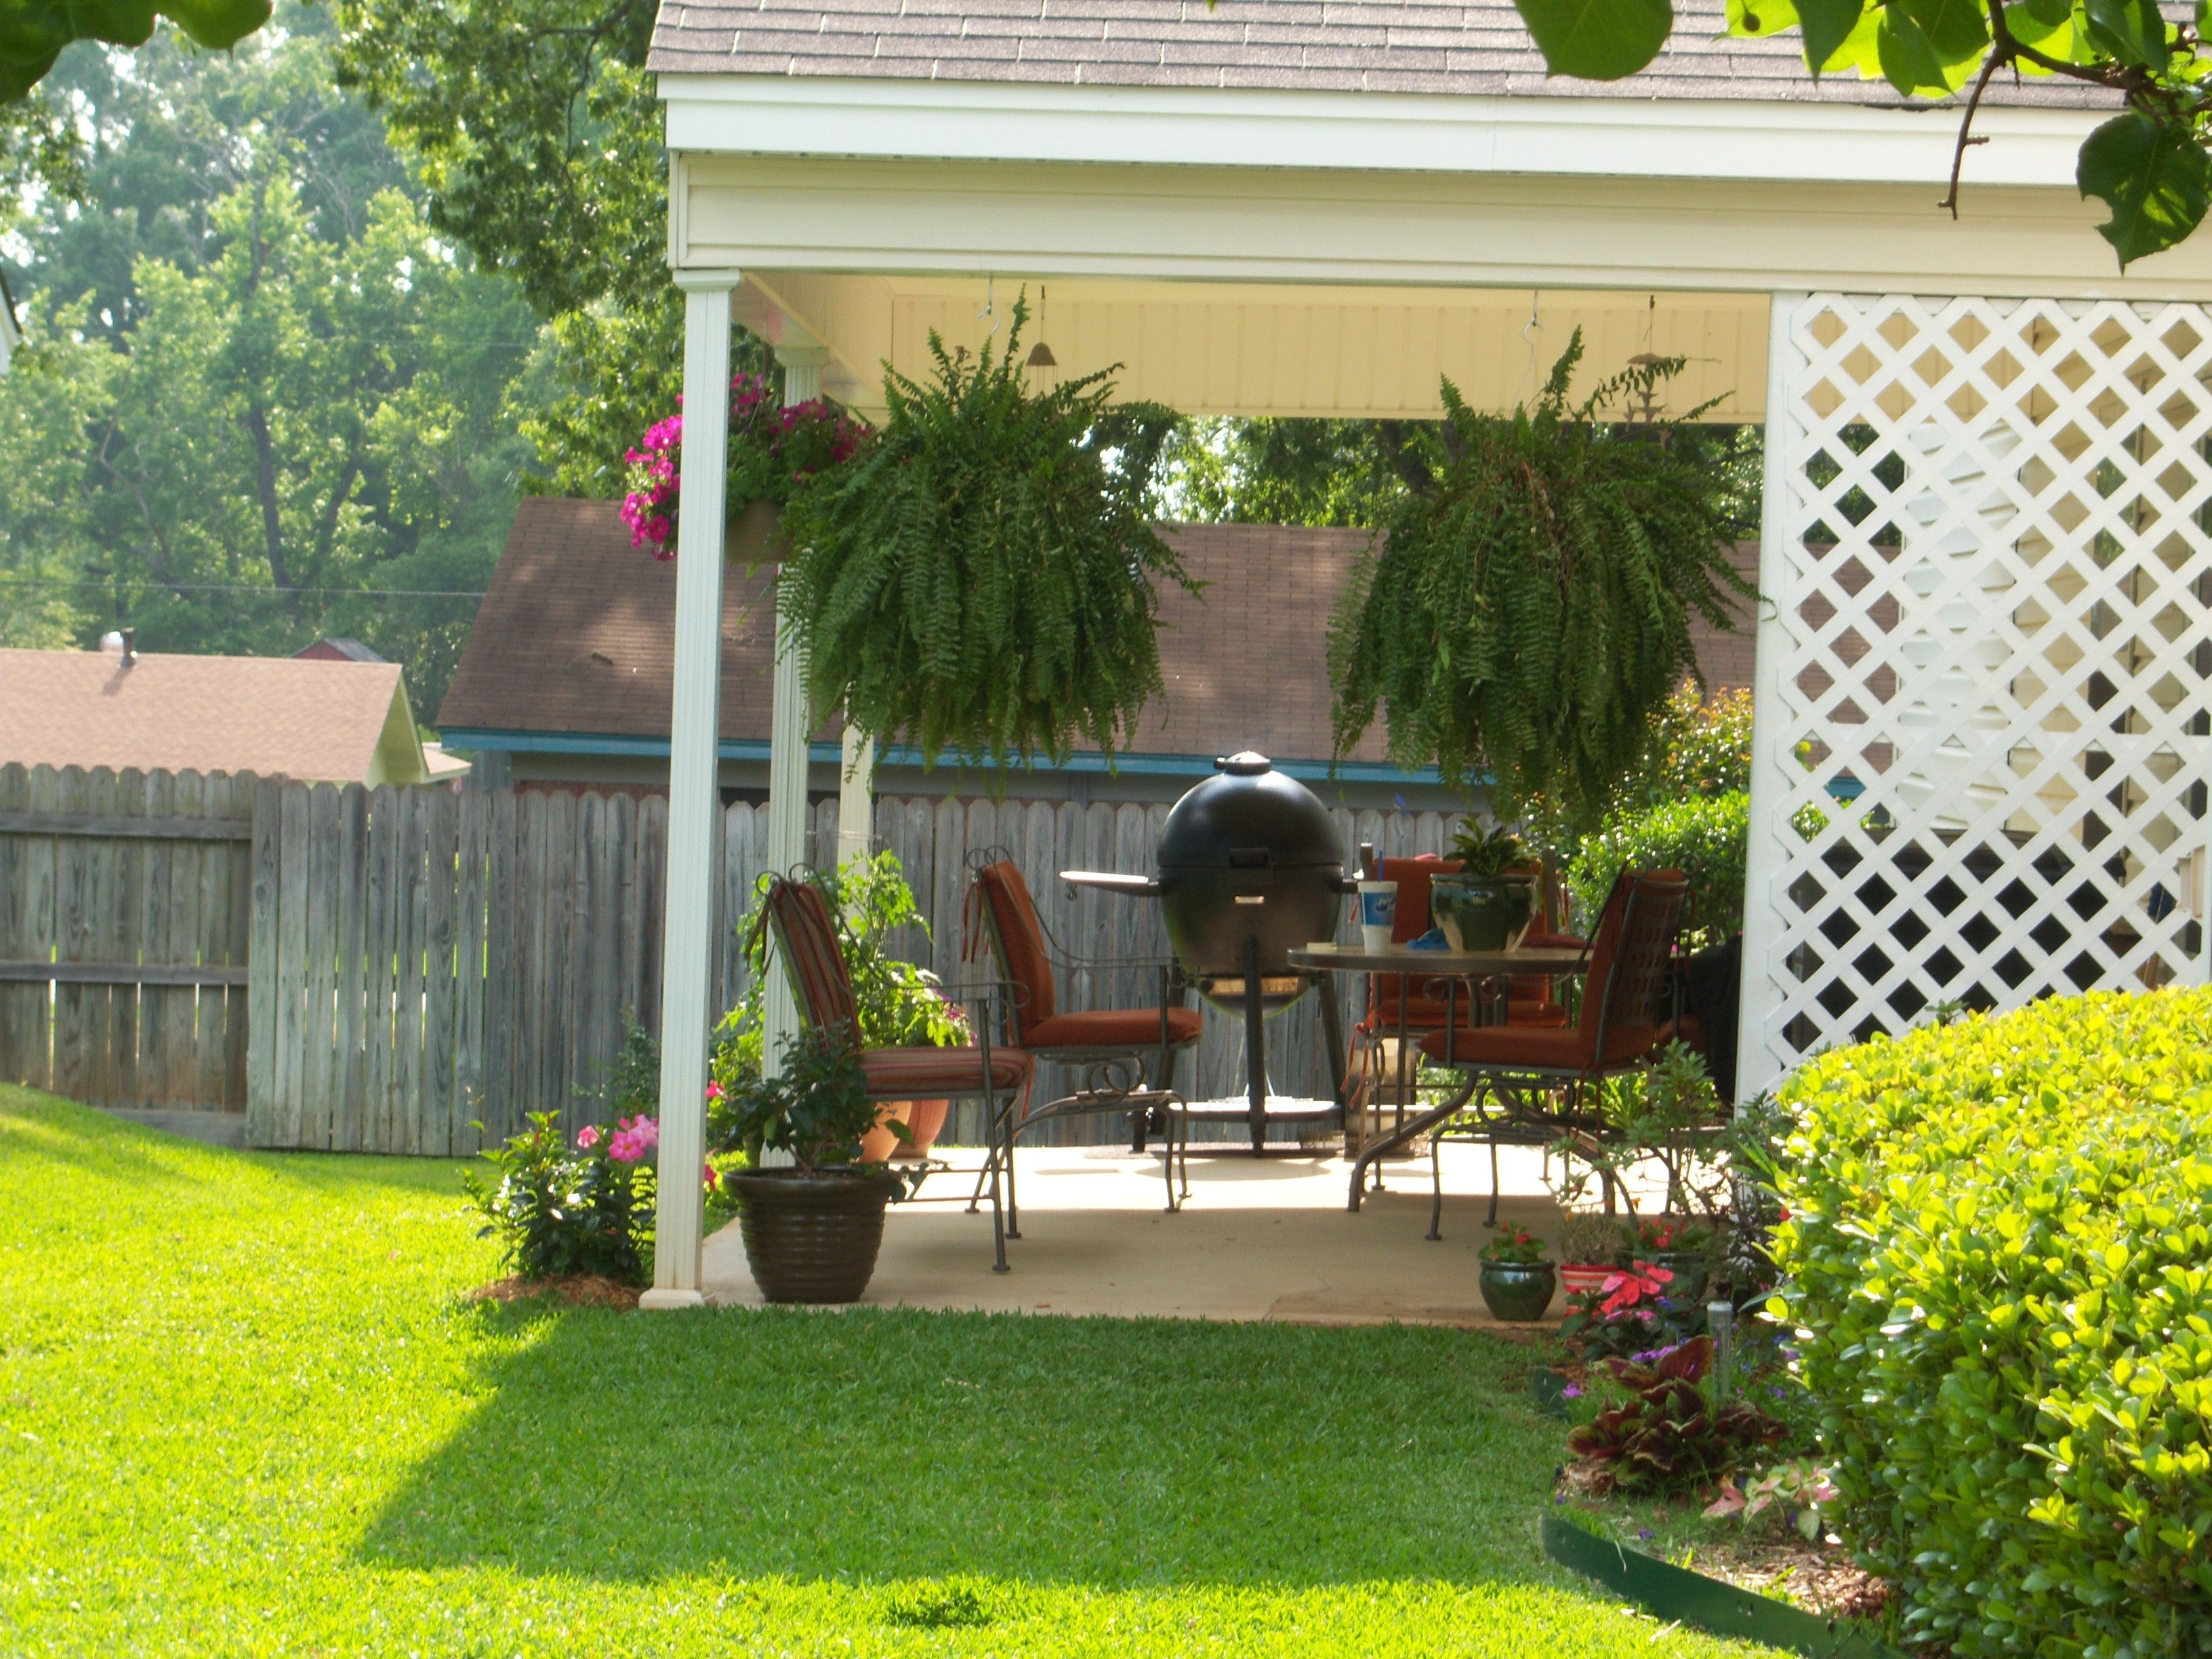 small patio but we love it our little house pinterest smallsmall patio but we love it small patio, little houses, our love, tiny